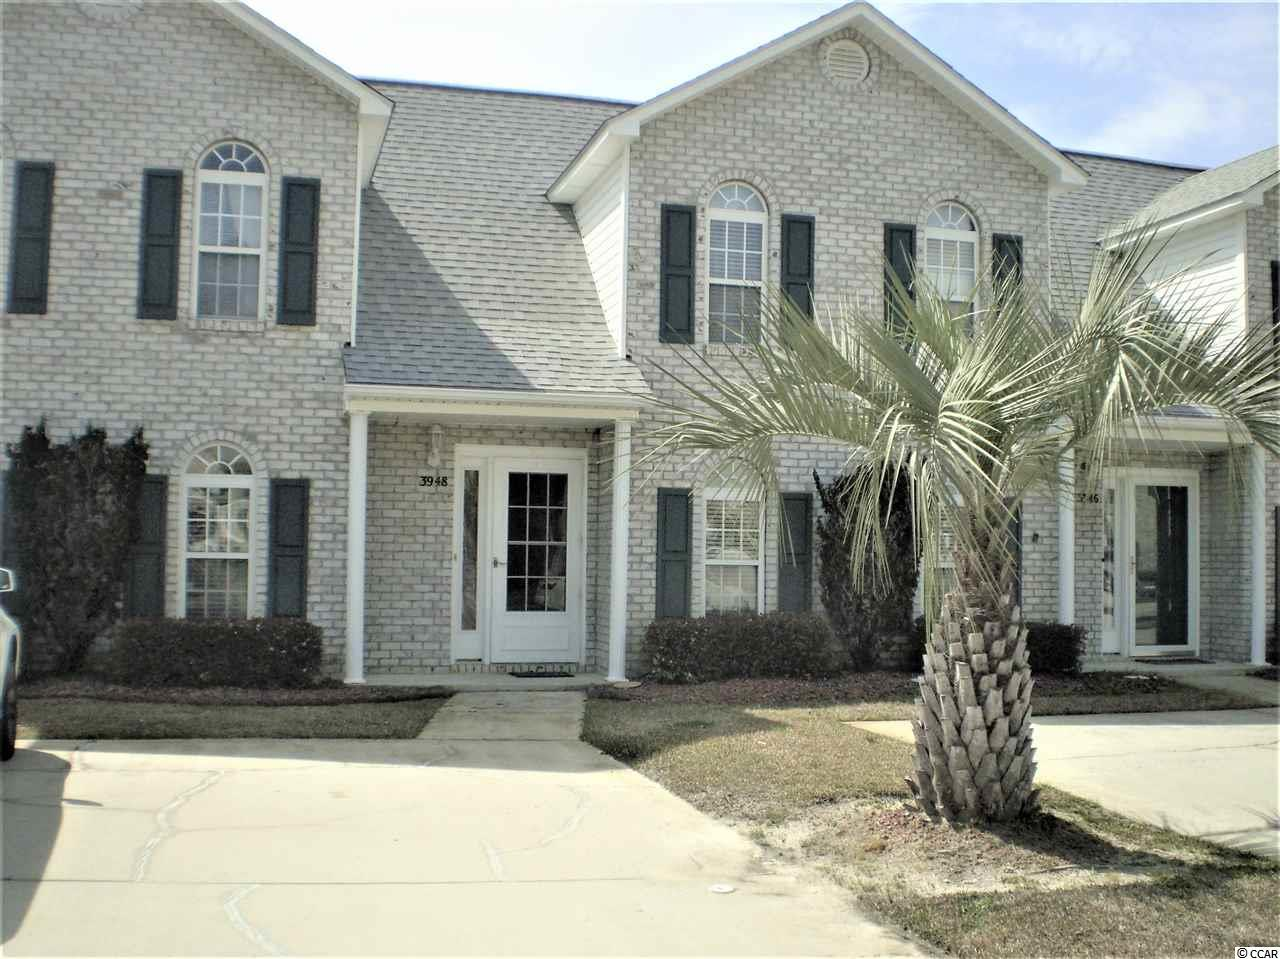 Condo in TYBRE DOWNS : Little River South Carolina